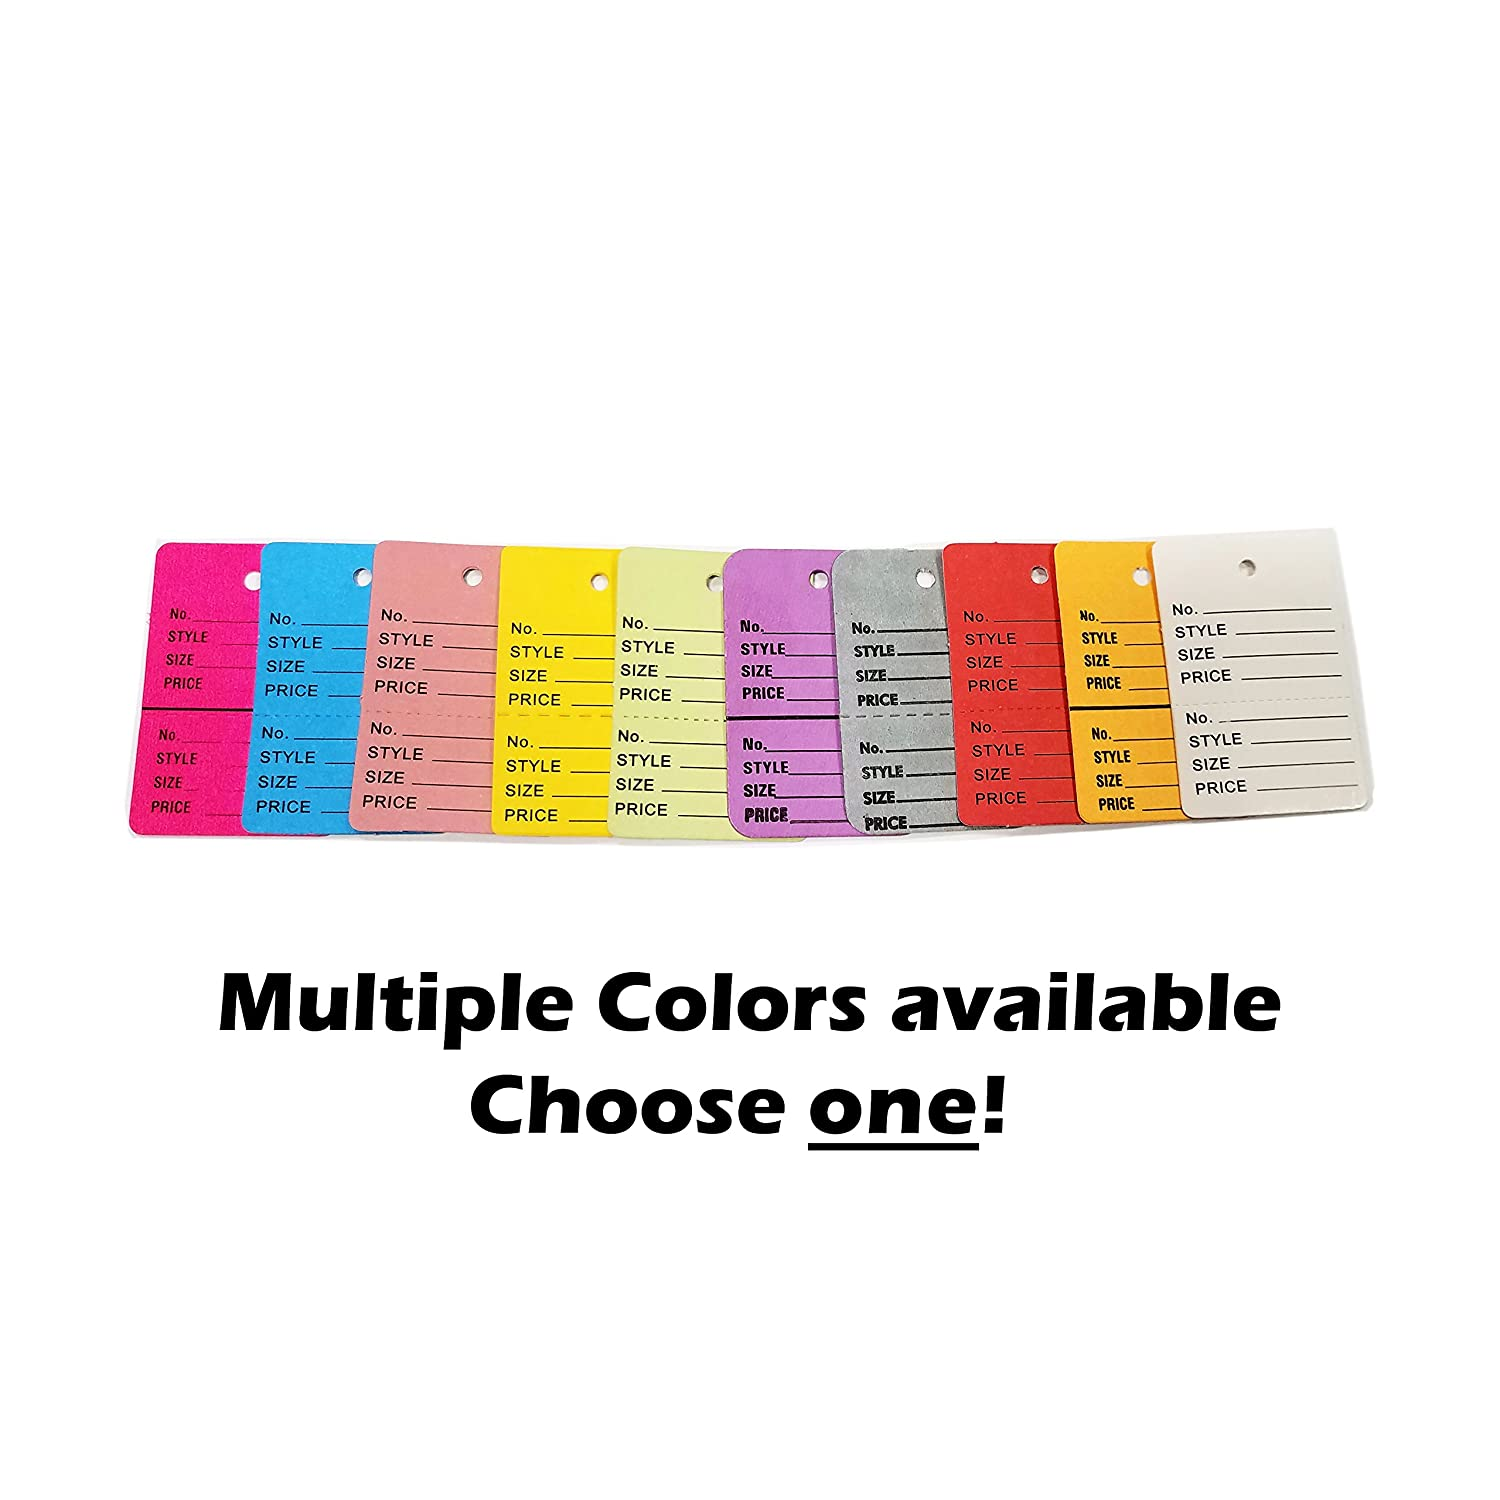 1000 Two-Part Number, Style, Size & Price Perforated Coupon Tags - 1.25' x 1.875', Fluorescent Pink Size & Price Perforated Coupon Tags - 1.25 x 1.875 Store Fixtures Direct